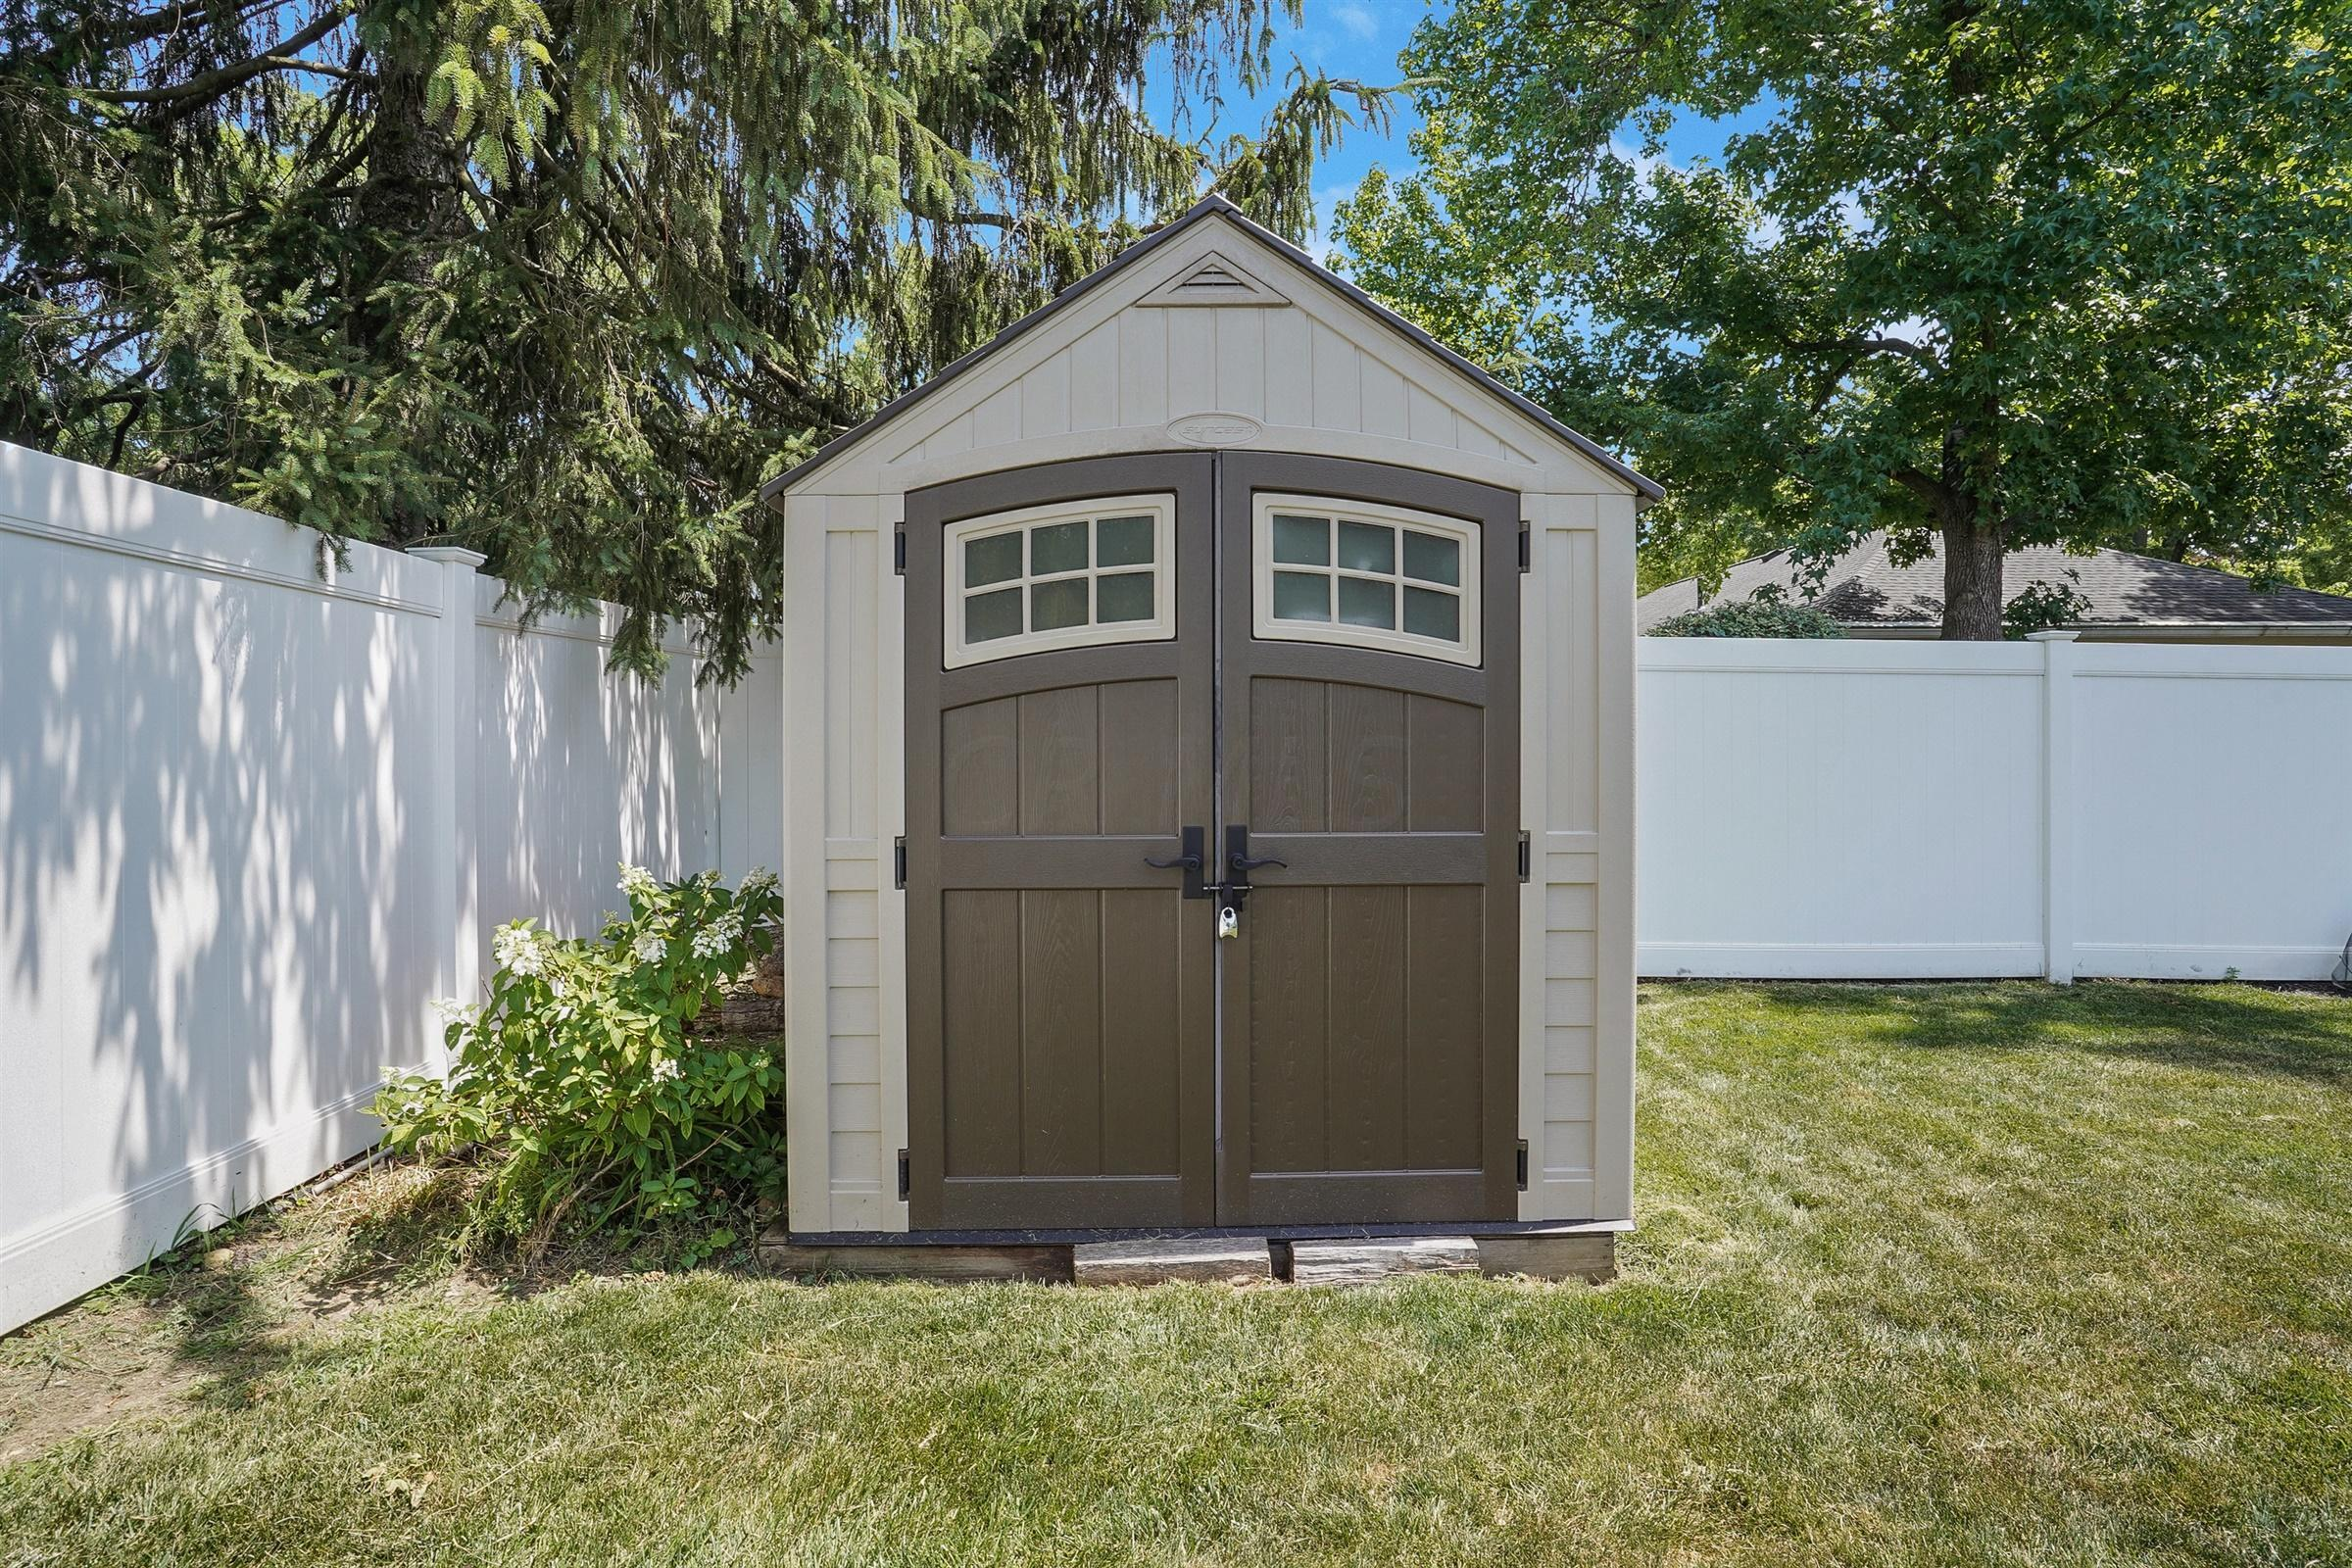 1330 Camelot Drive, Columbus, Ohio 43220, 3 Bedrooms Bedrooms, ,2 BathroomsBathrooms,Residential,For Sale,Camelot,220024475